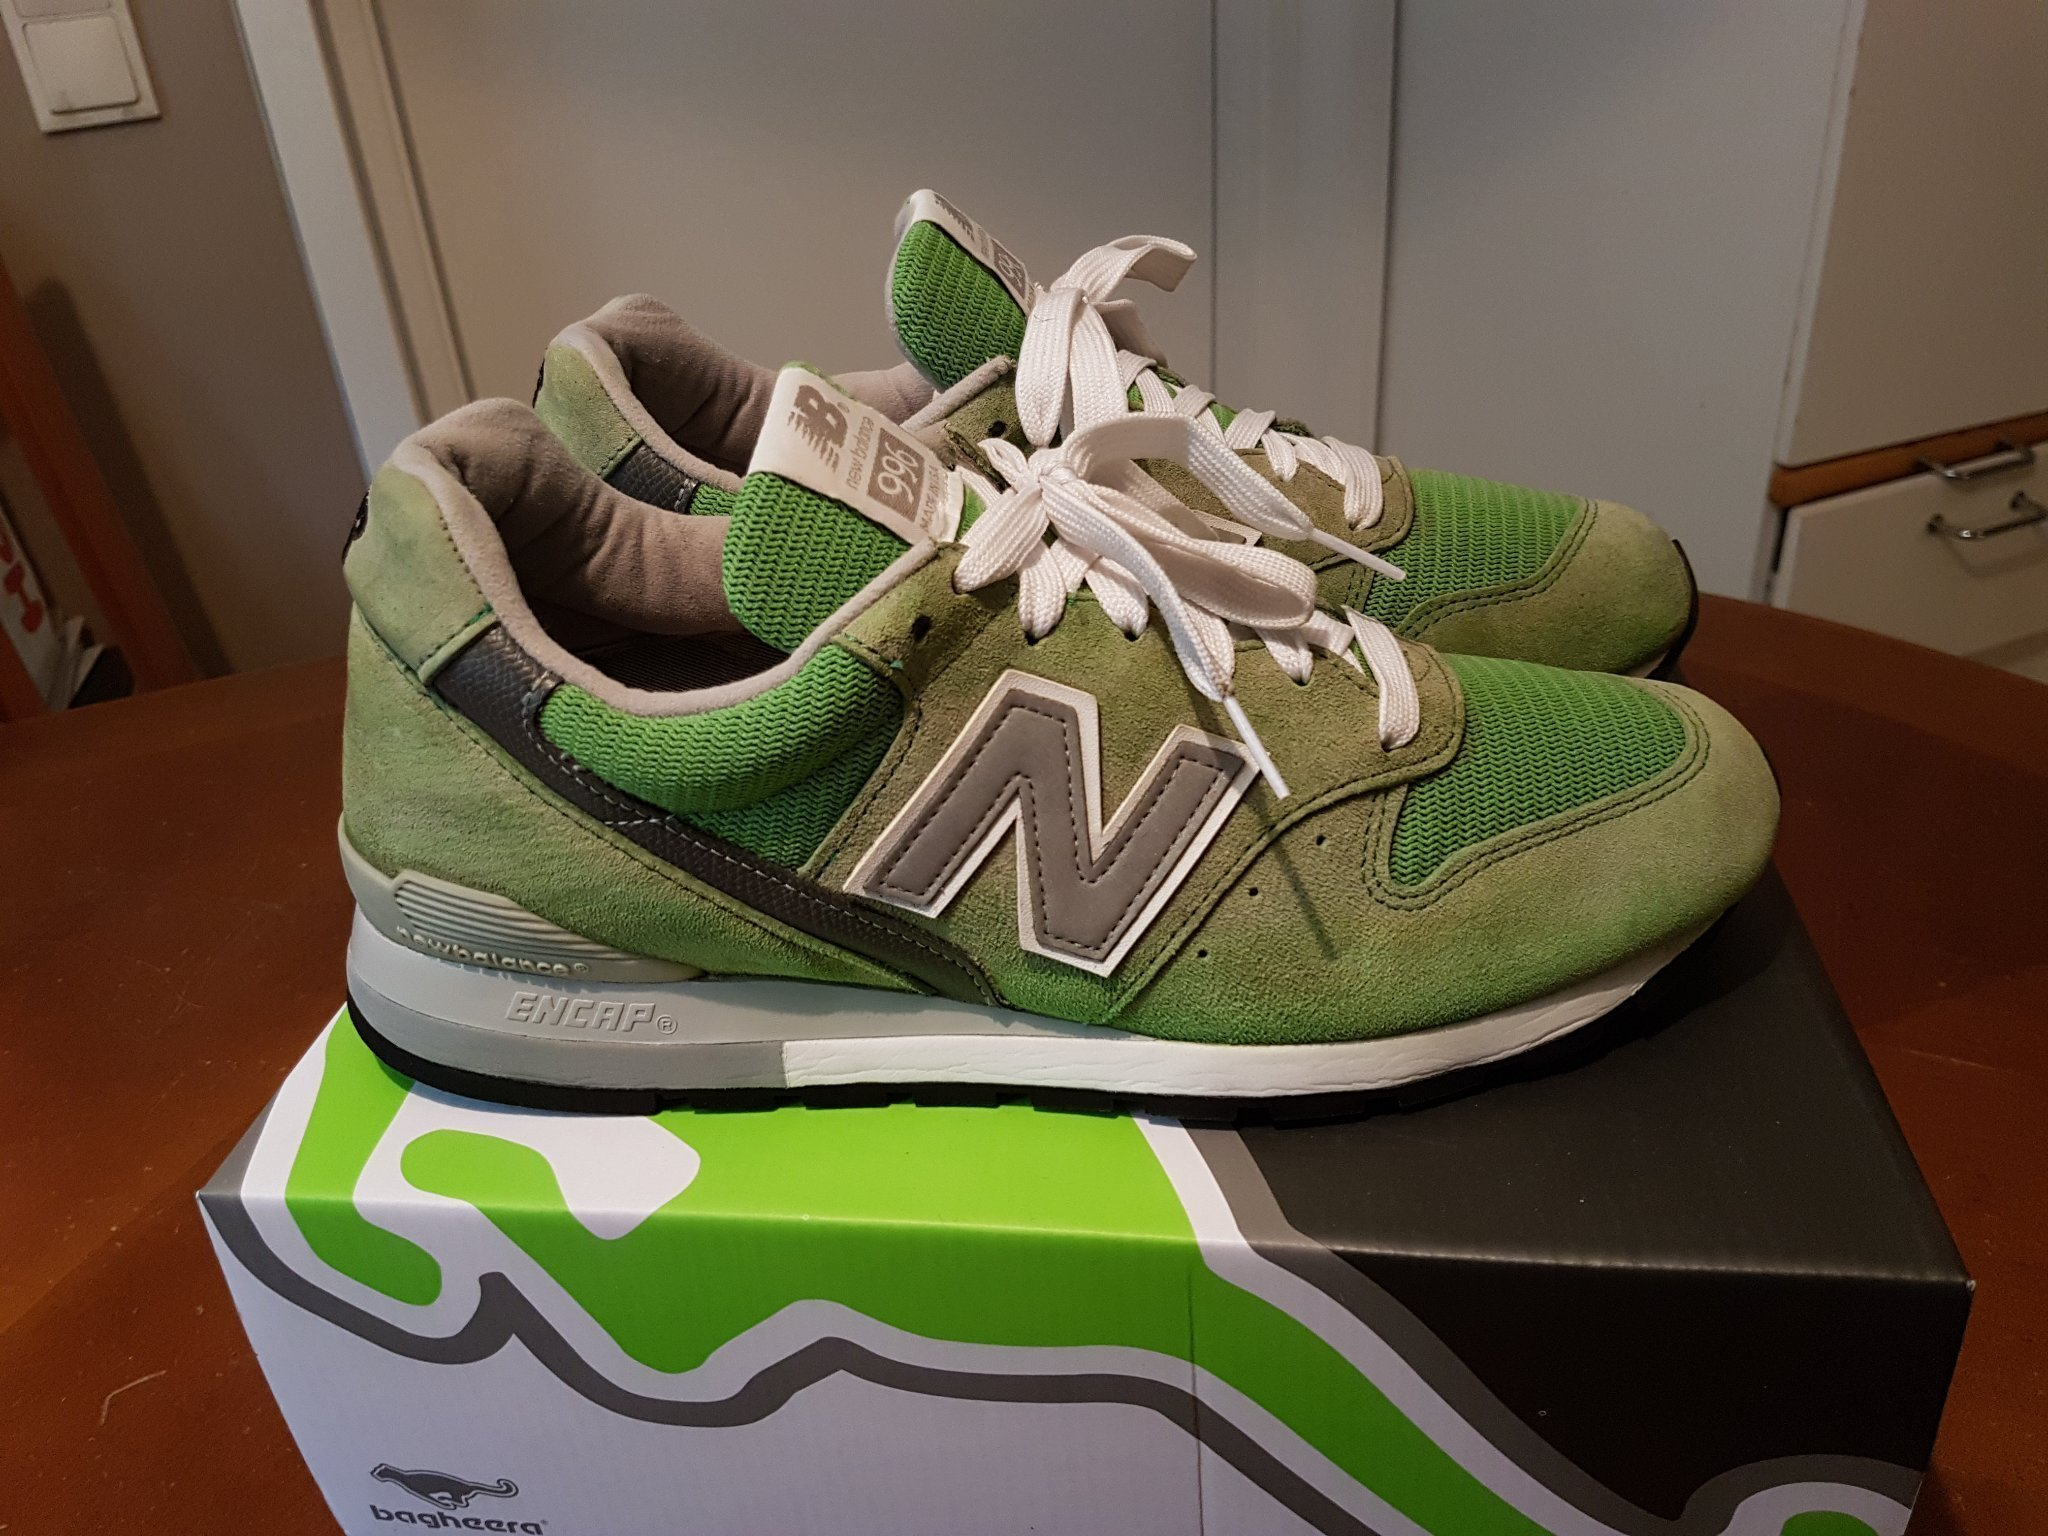 separation shoes 8434c f9d25 New Balance 996 Encap sko storlek 43 (358758242) ᐈ Köp på ...